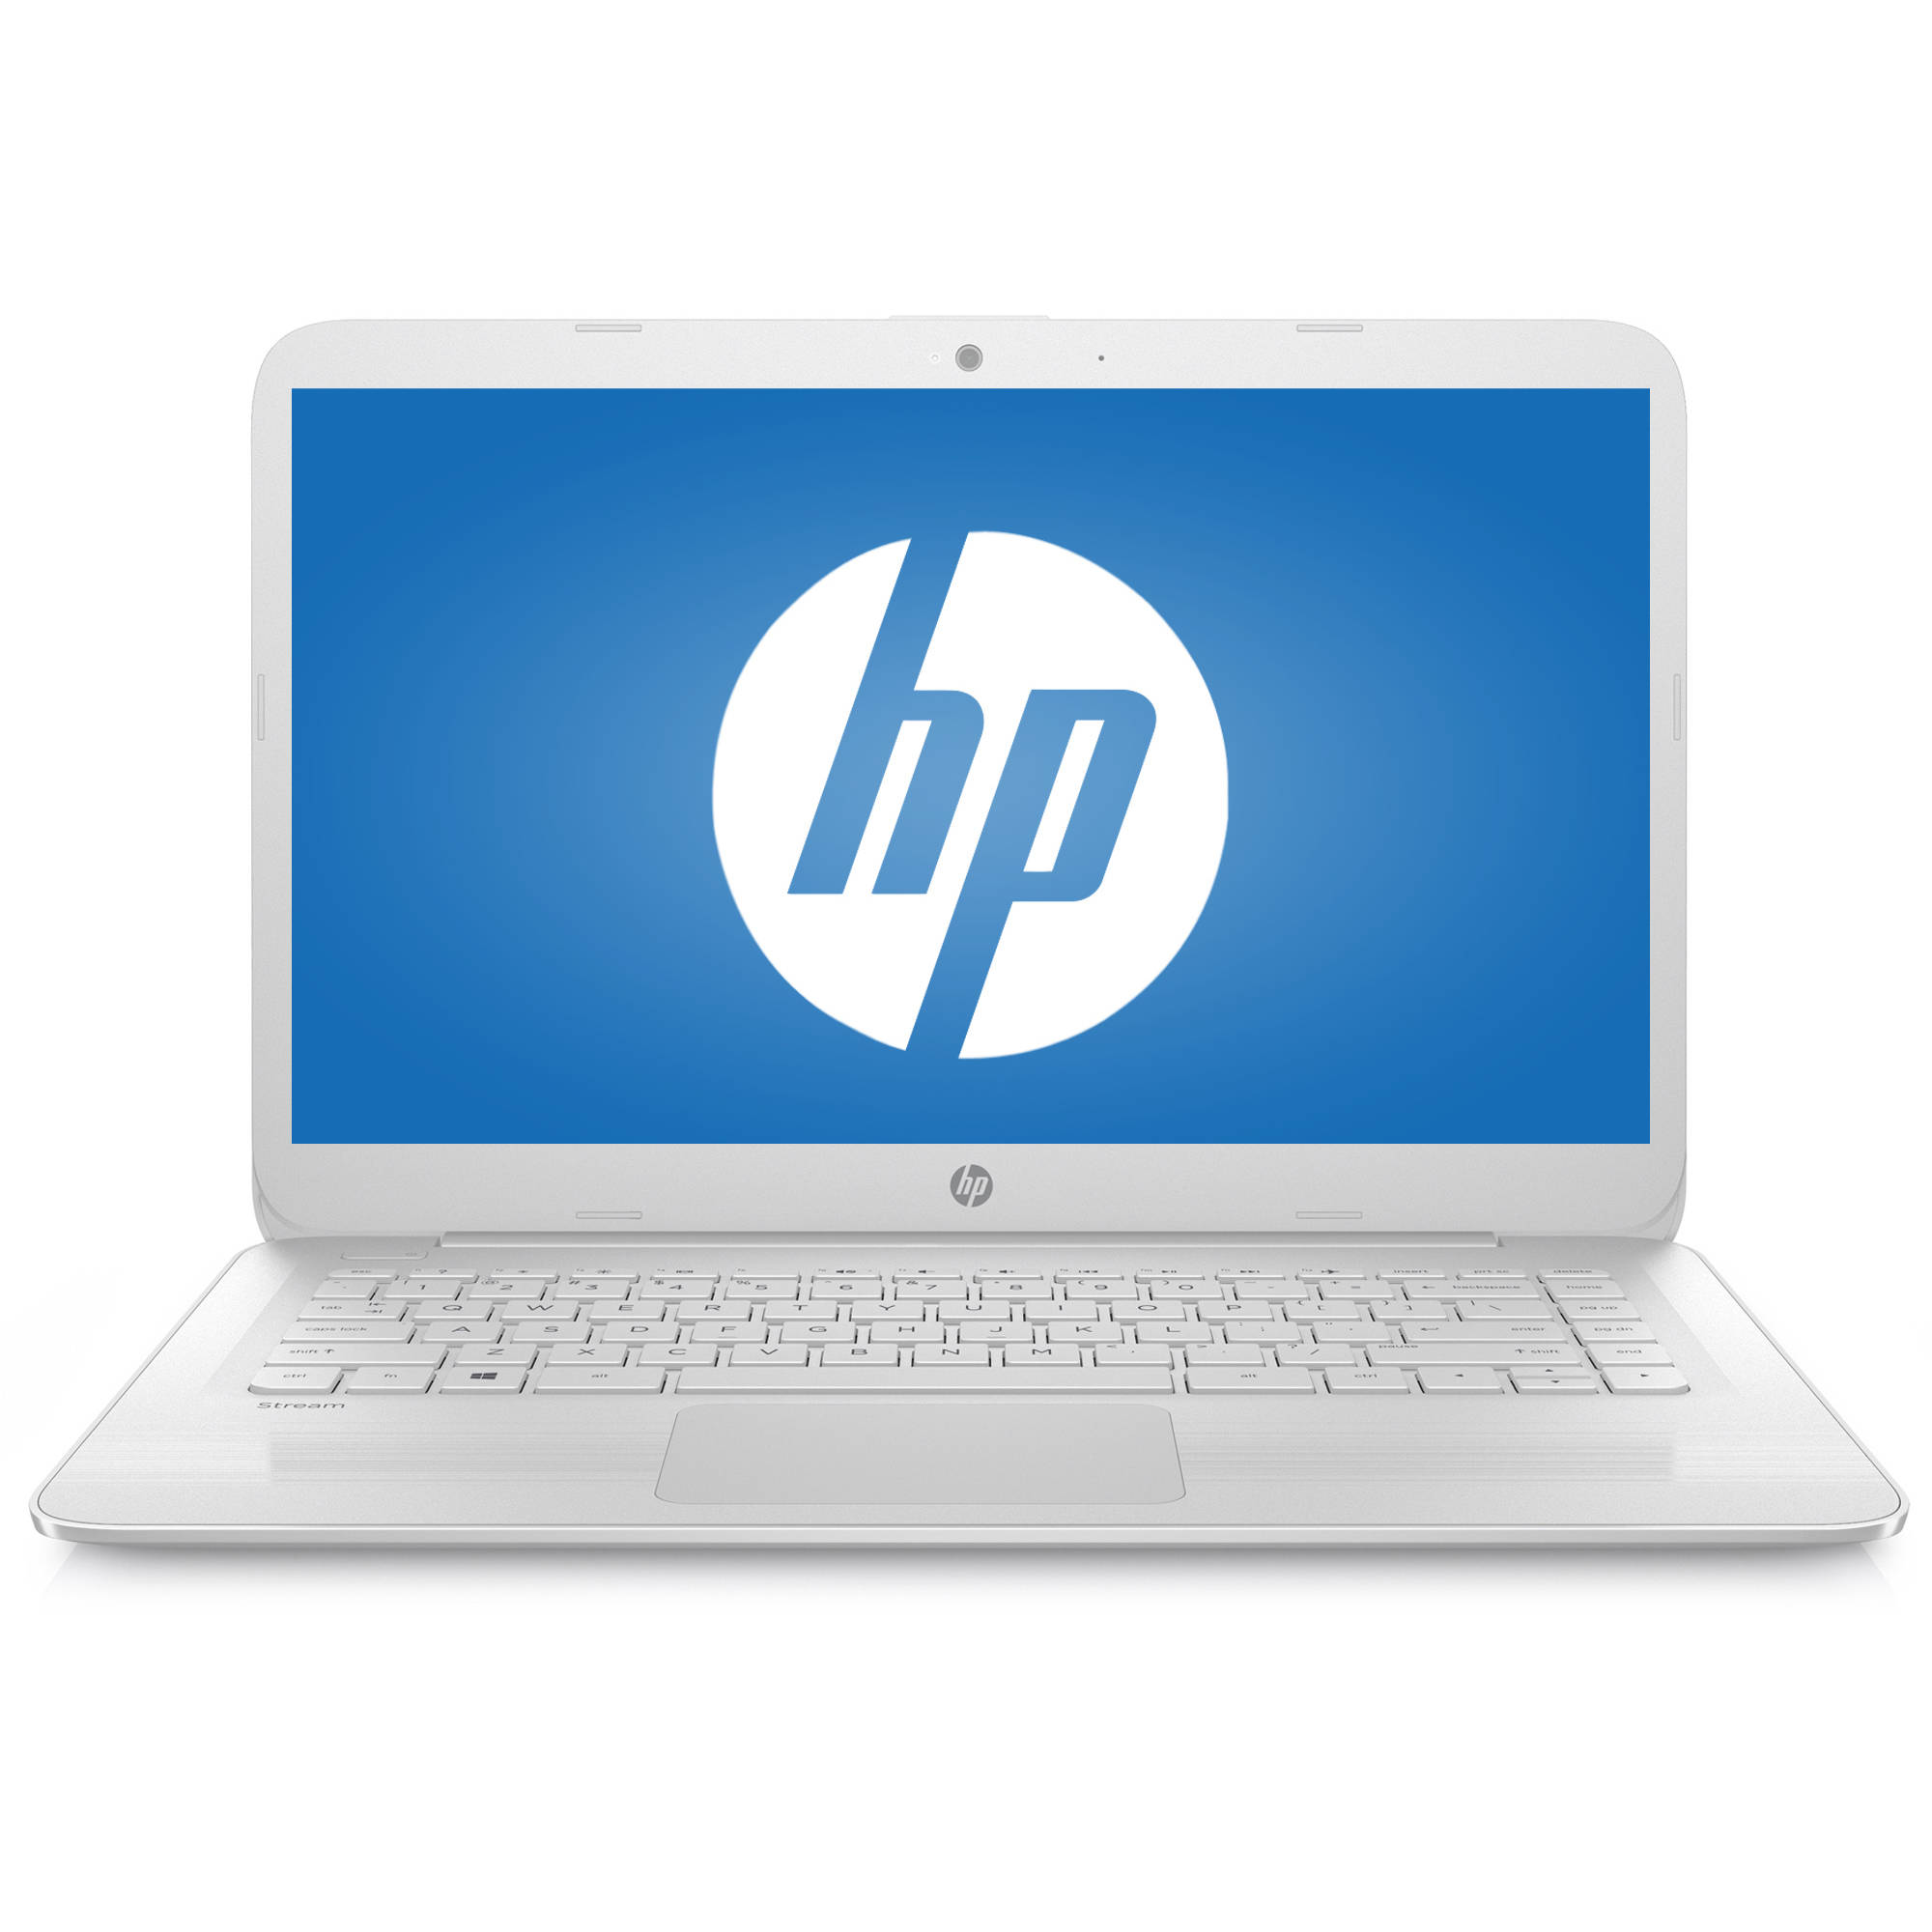 "HP Stream 14-ax067nr 14"" Laptop, Windows 10 Home, Intel Celeron N3060 Dual-Core Processor, 4GB RAM, 32GB Flash Storage"